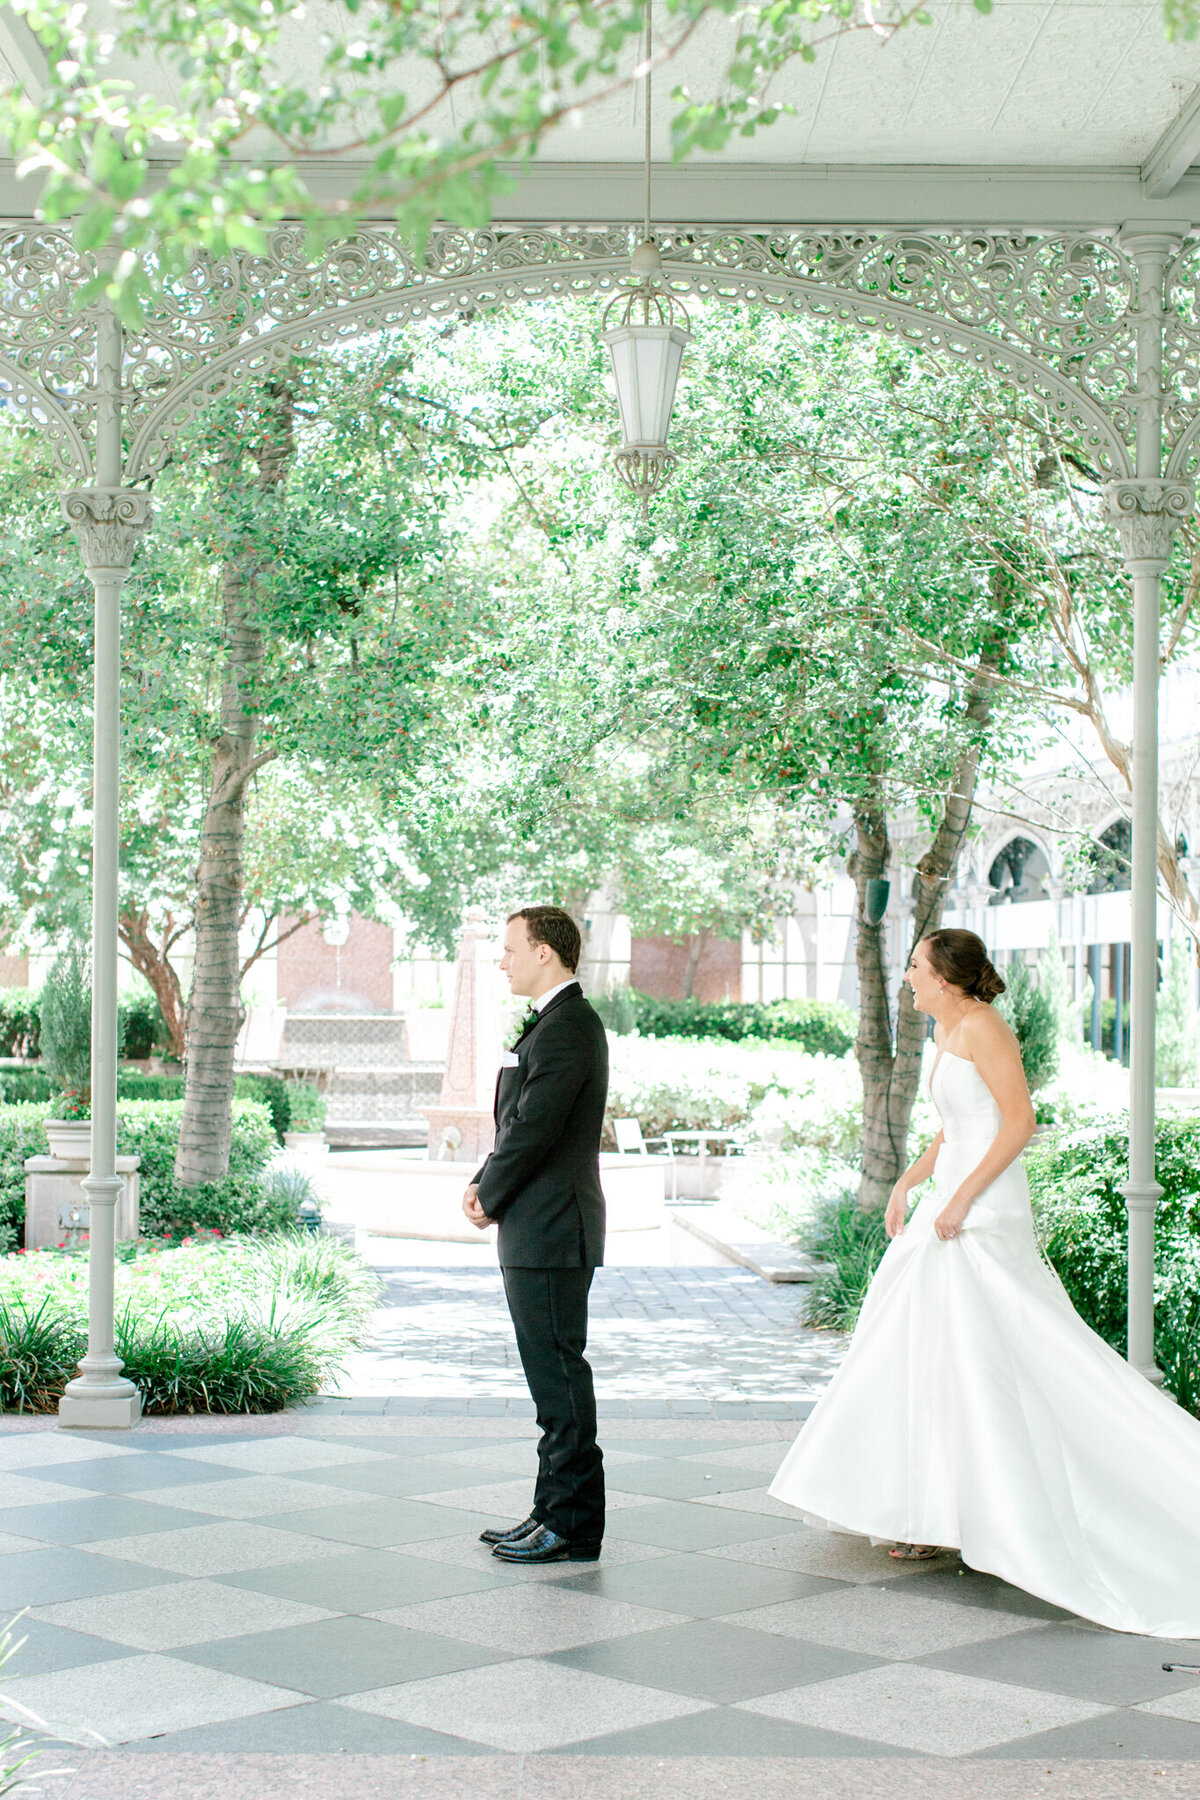 Wedding at the Crescent Court Hotel and Highland Park United Methodist Church in Dallas | Sami Kathryn Photography | DFW Wedding Photographer-47